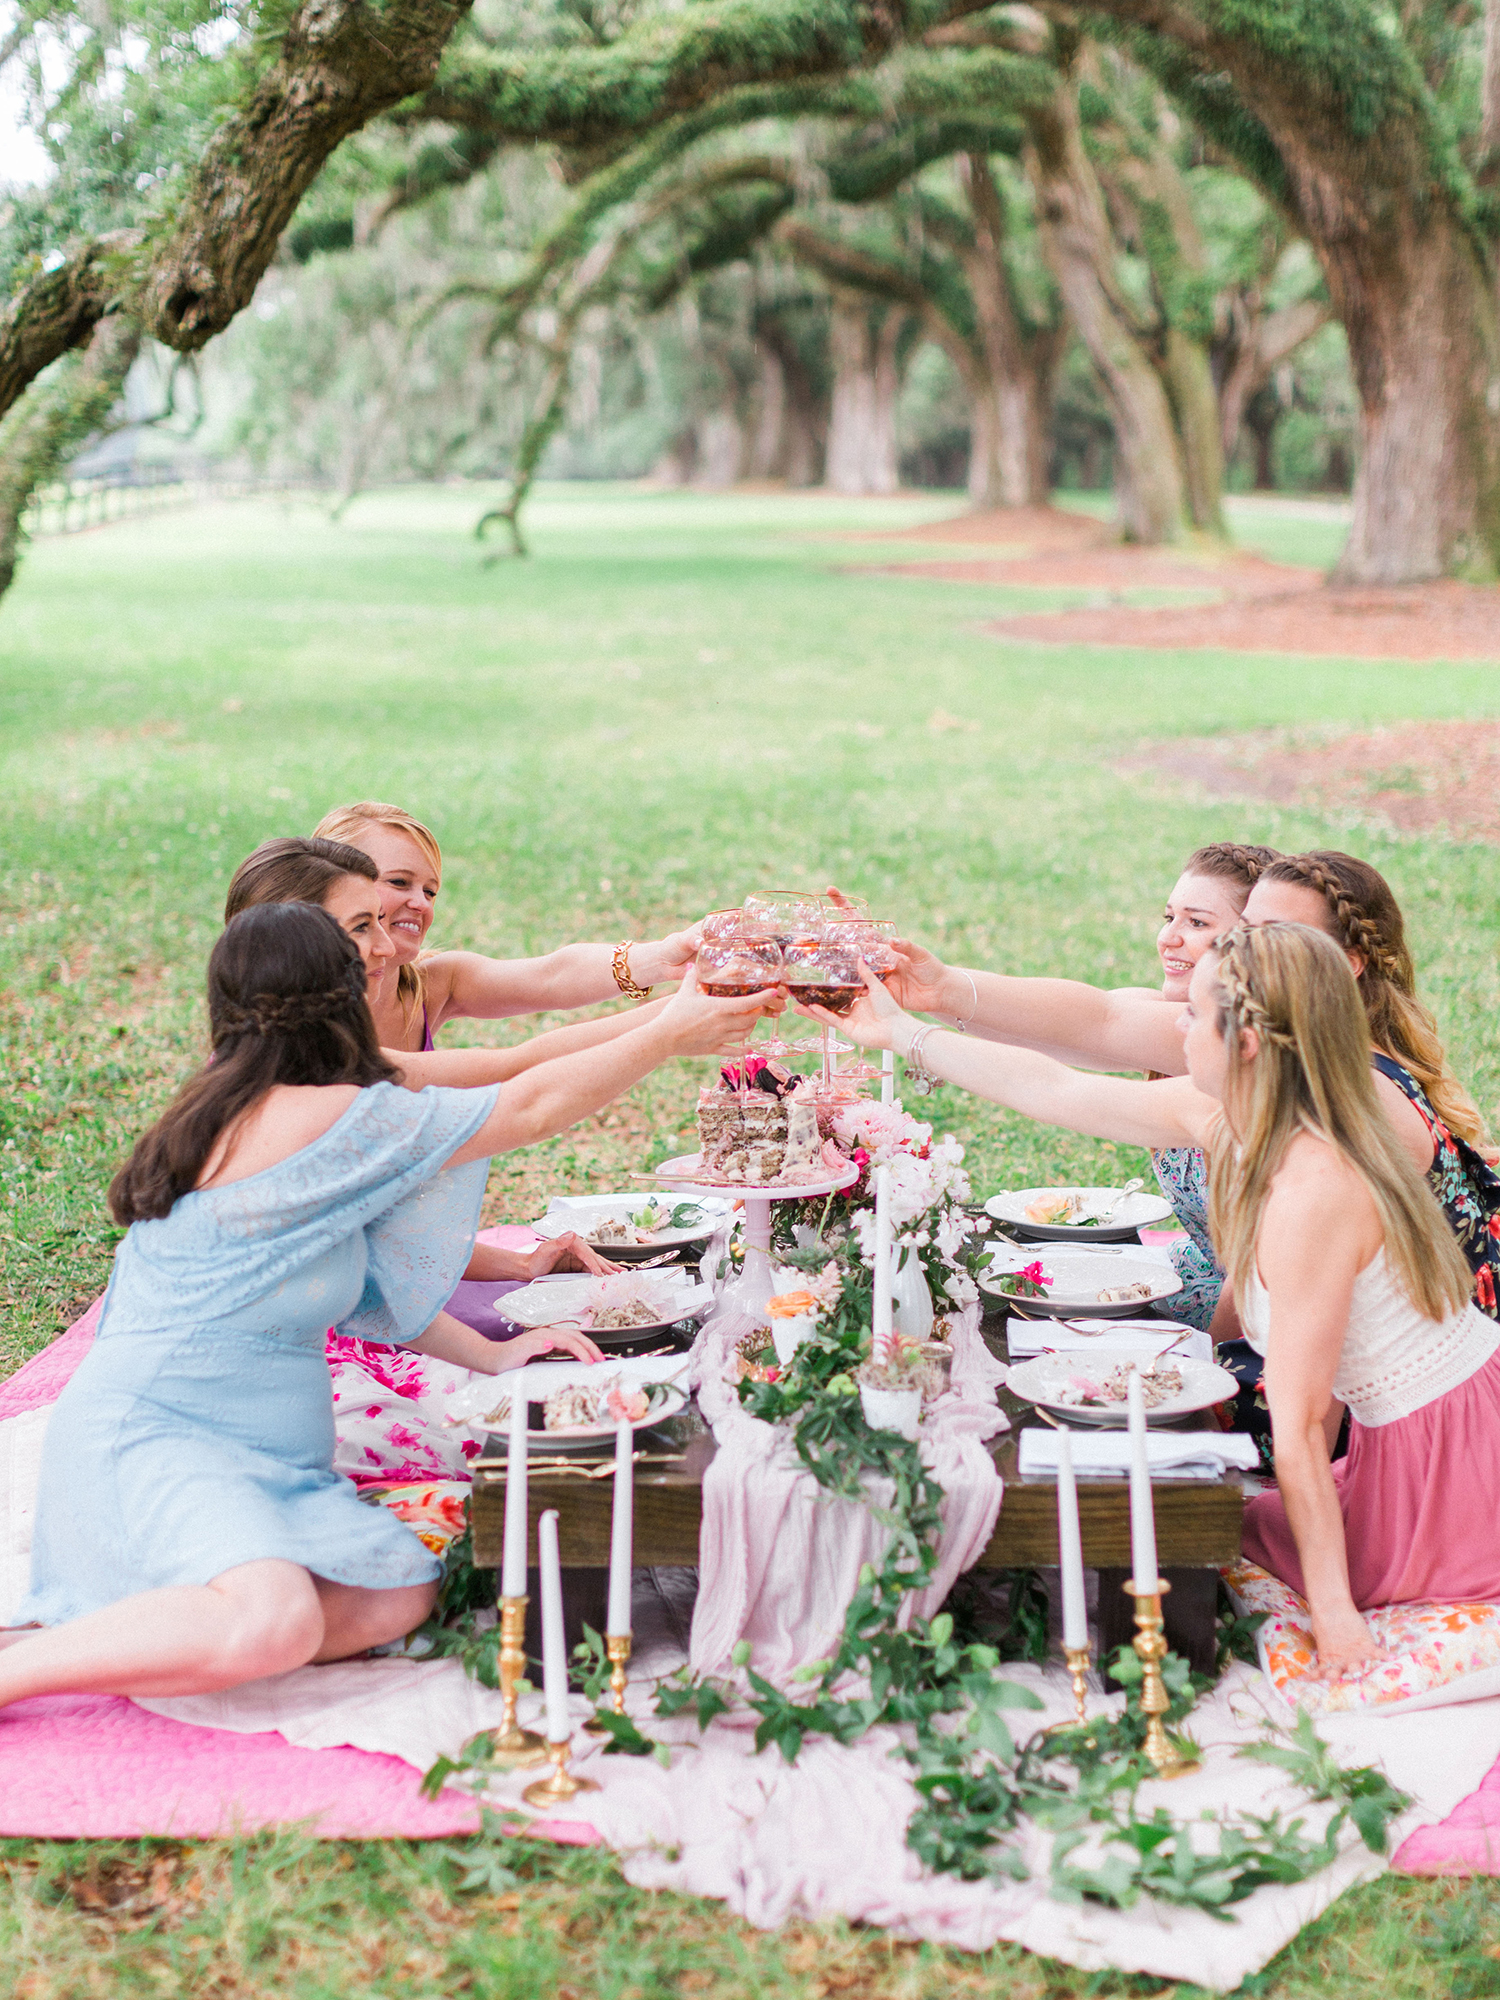 Maid of Honor Picnic